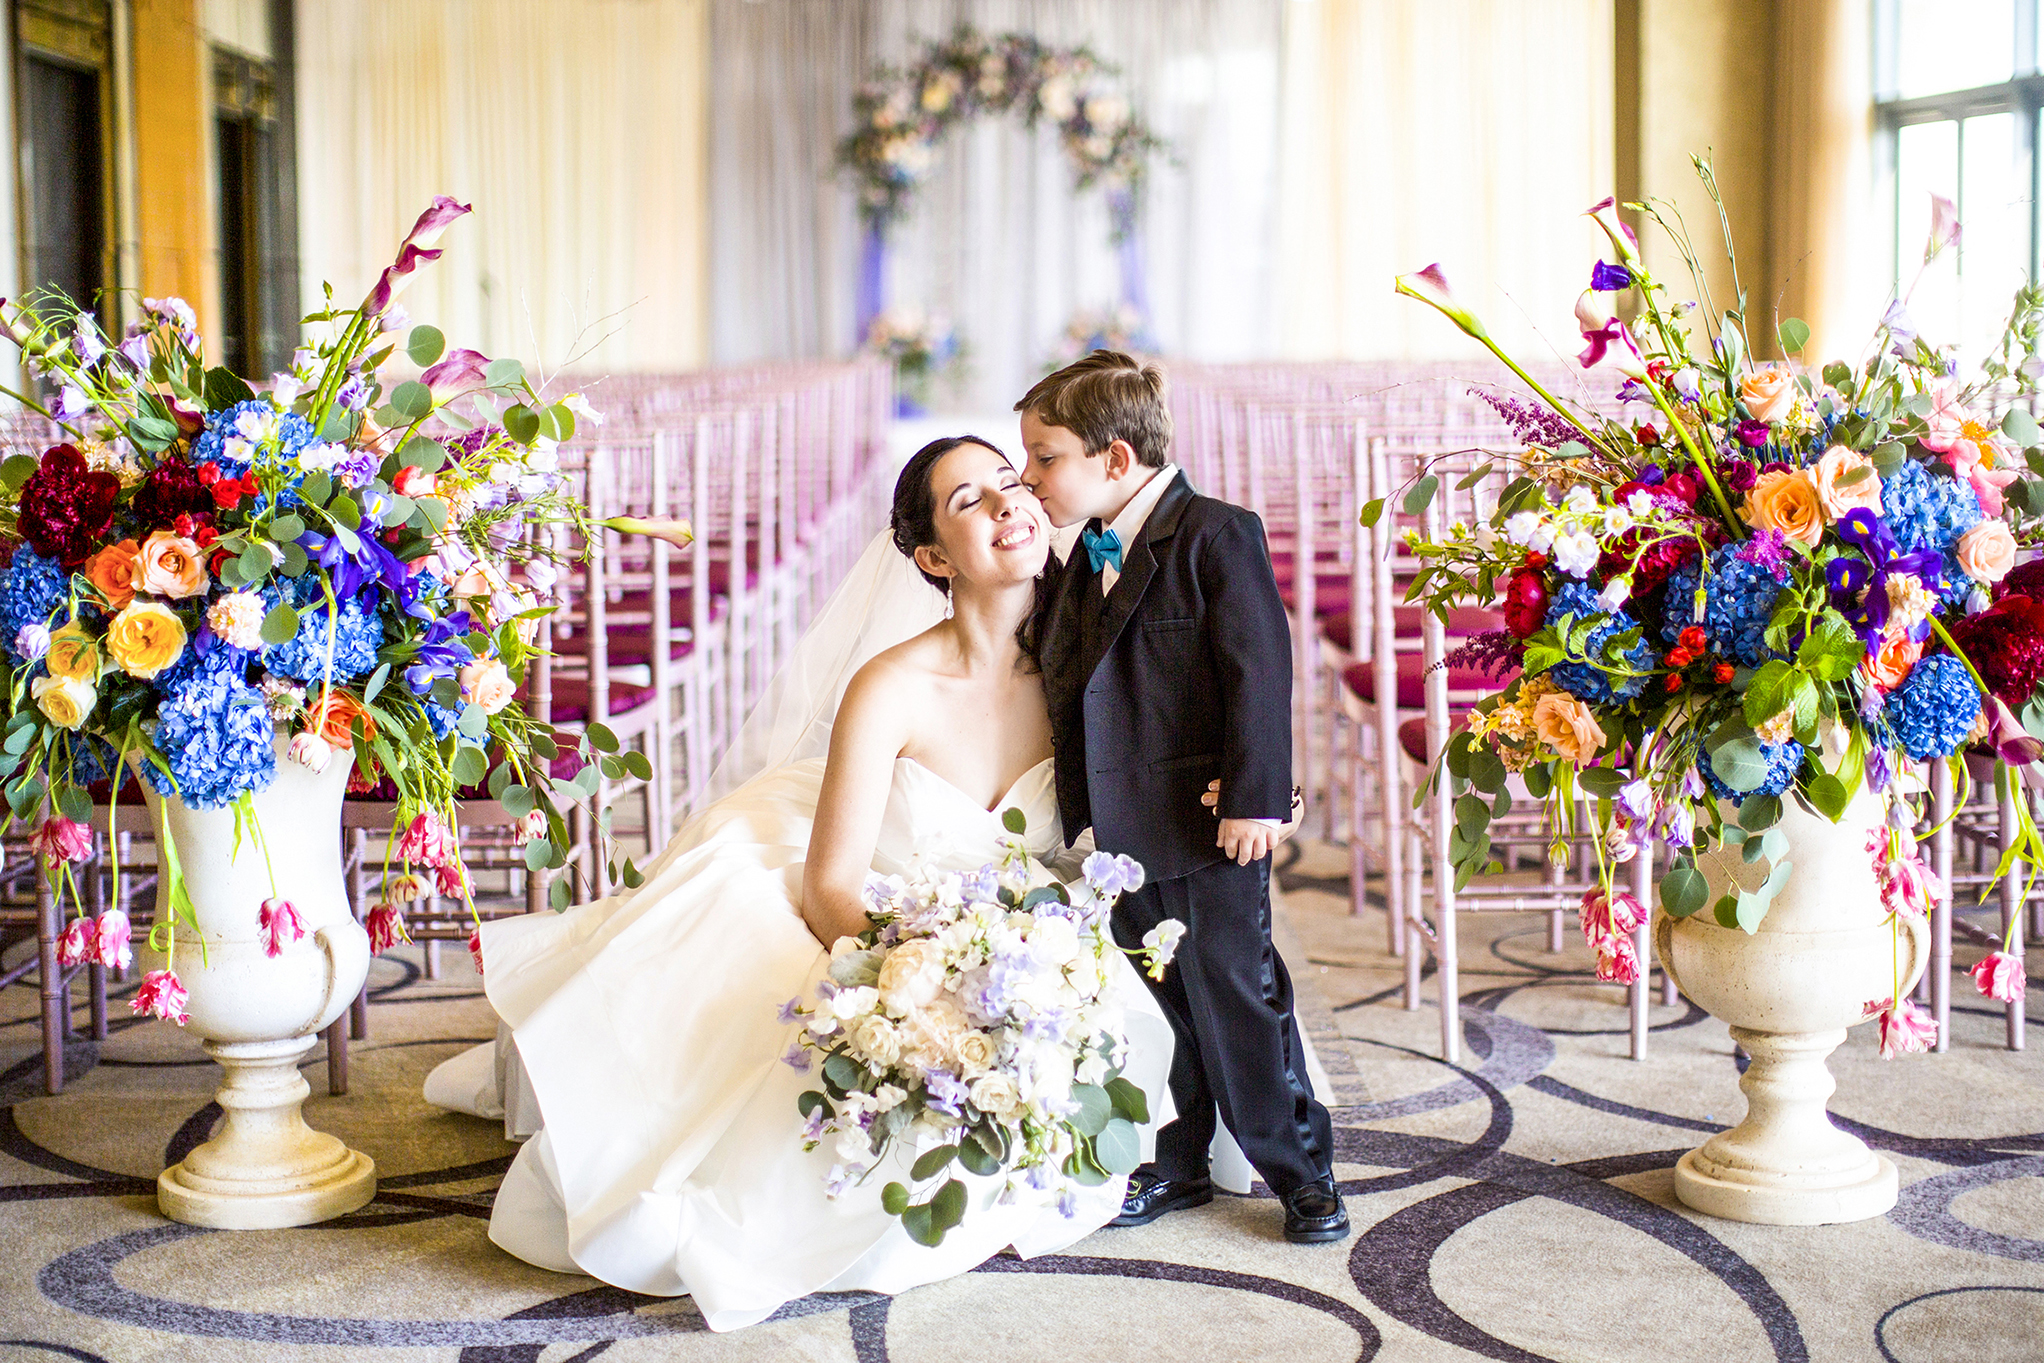 Boy wearing black tux and bright blue bowtie kisses bride in aisle - photo by Anna Schmidt